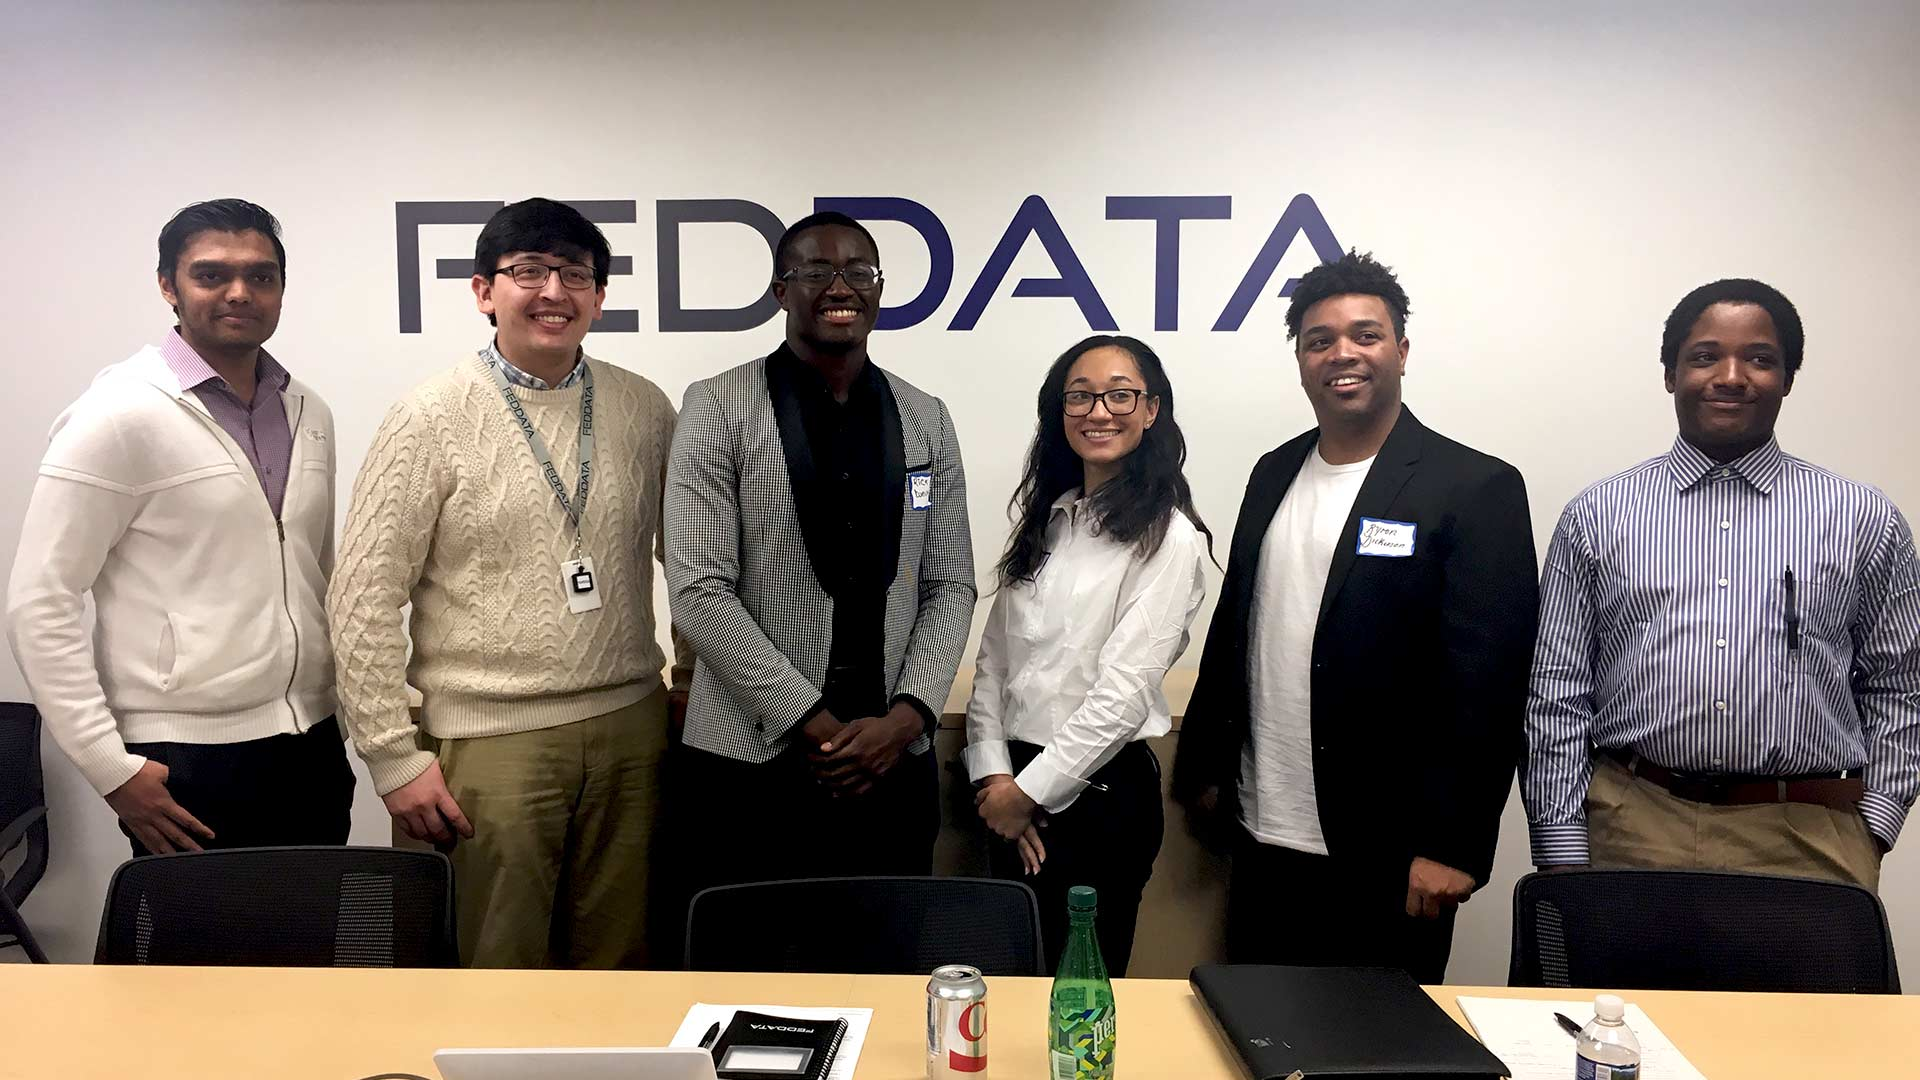 SMCM students visit FedData on Career Immersion Trip